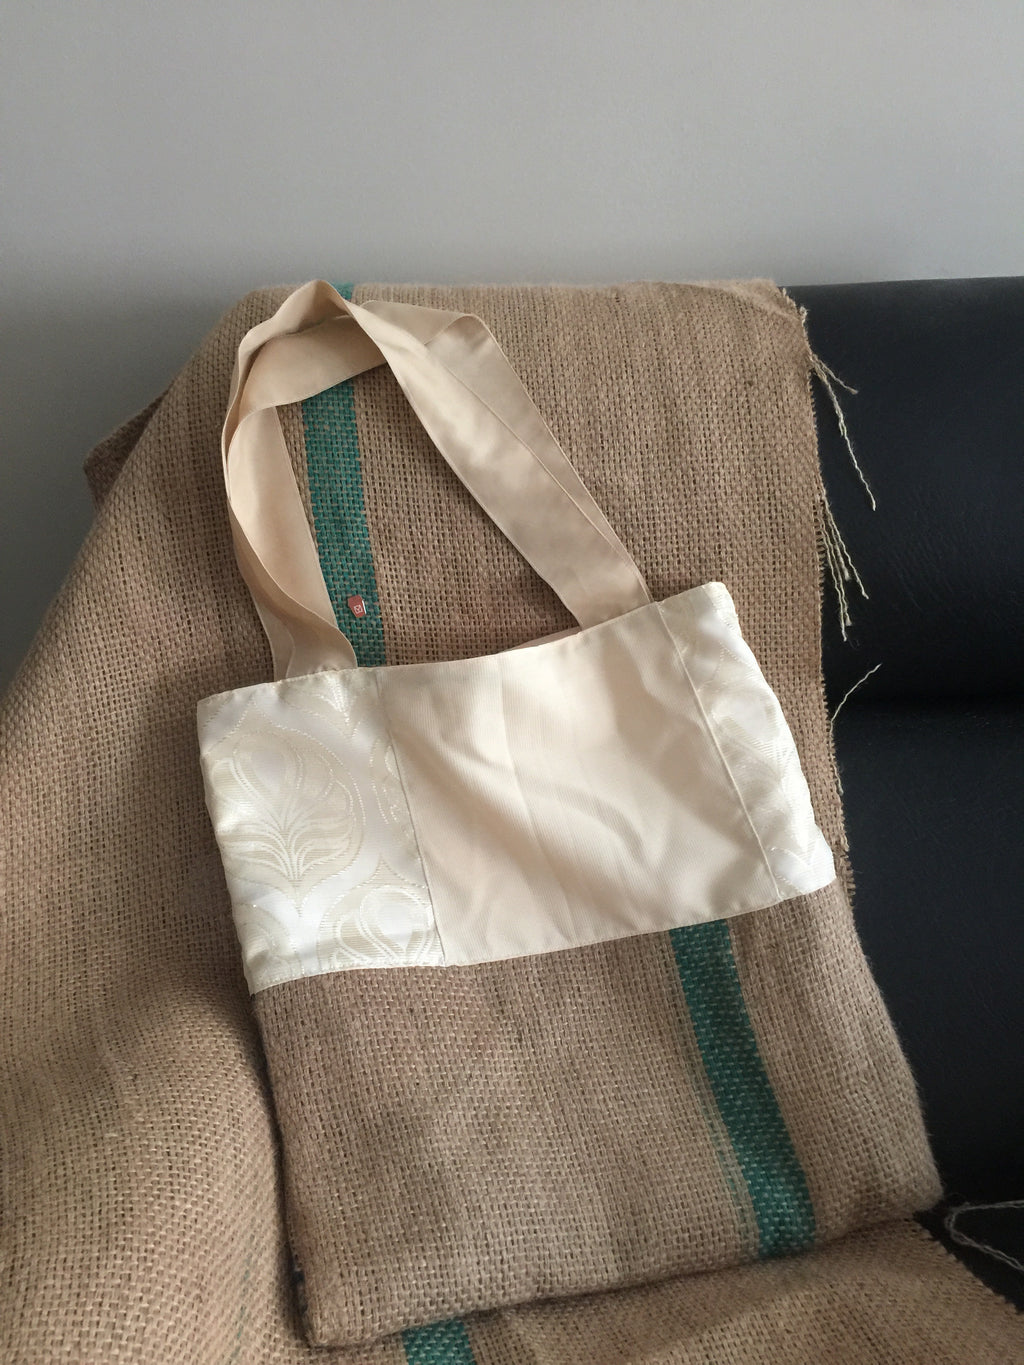 TOTEdo Na TOTEs Bag - Yardstick Coffee Collab - Decaf